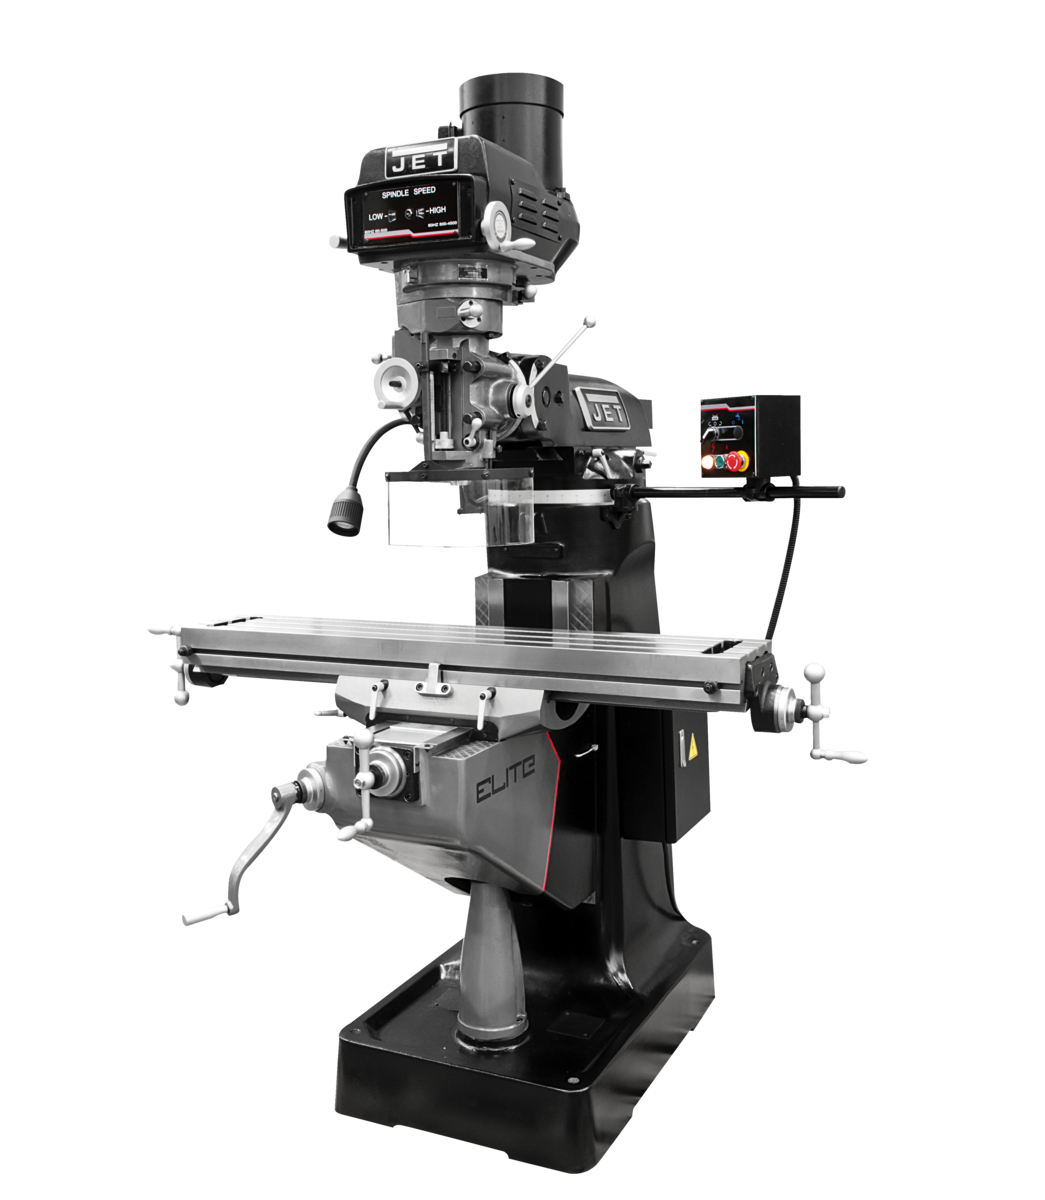 ETM-949, Elite 9x49 Variable Speed Mill